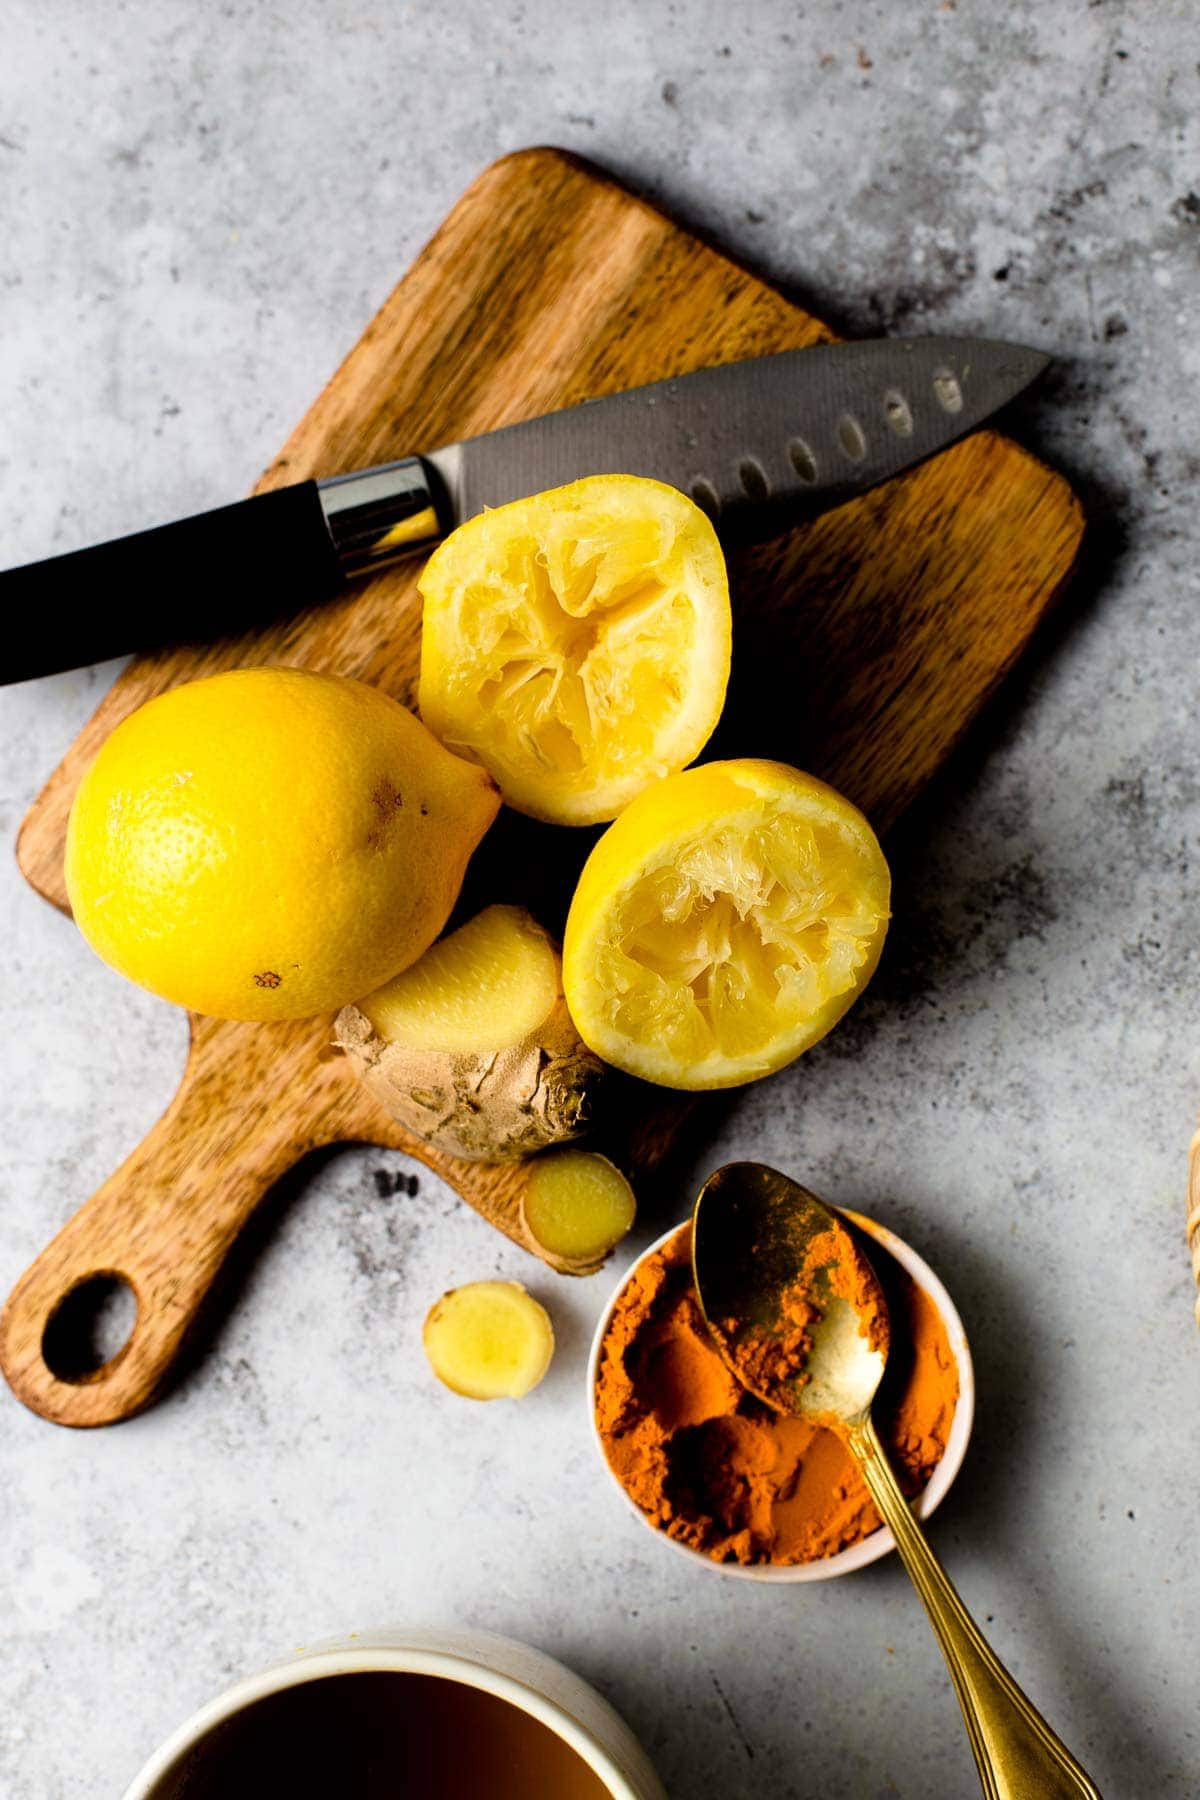 A wooden chopping board featuring lemons, ginger and a small bowl of turmeric.